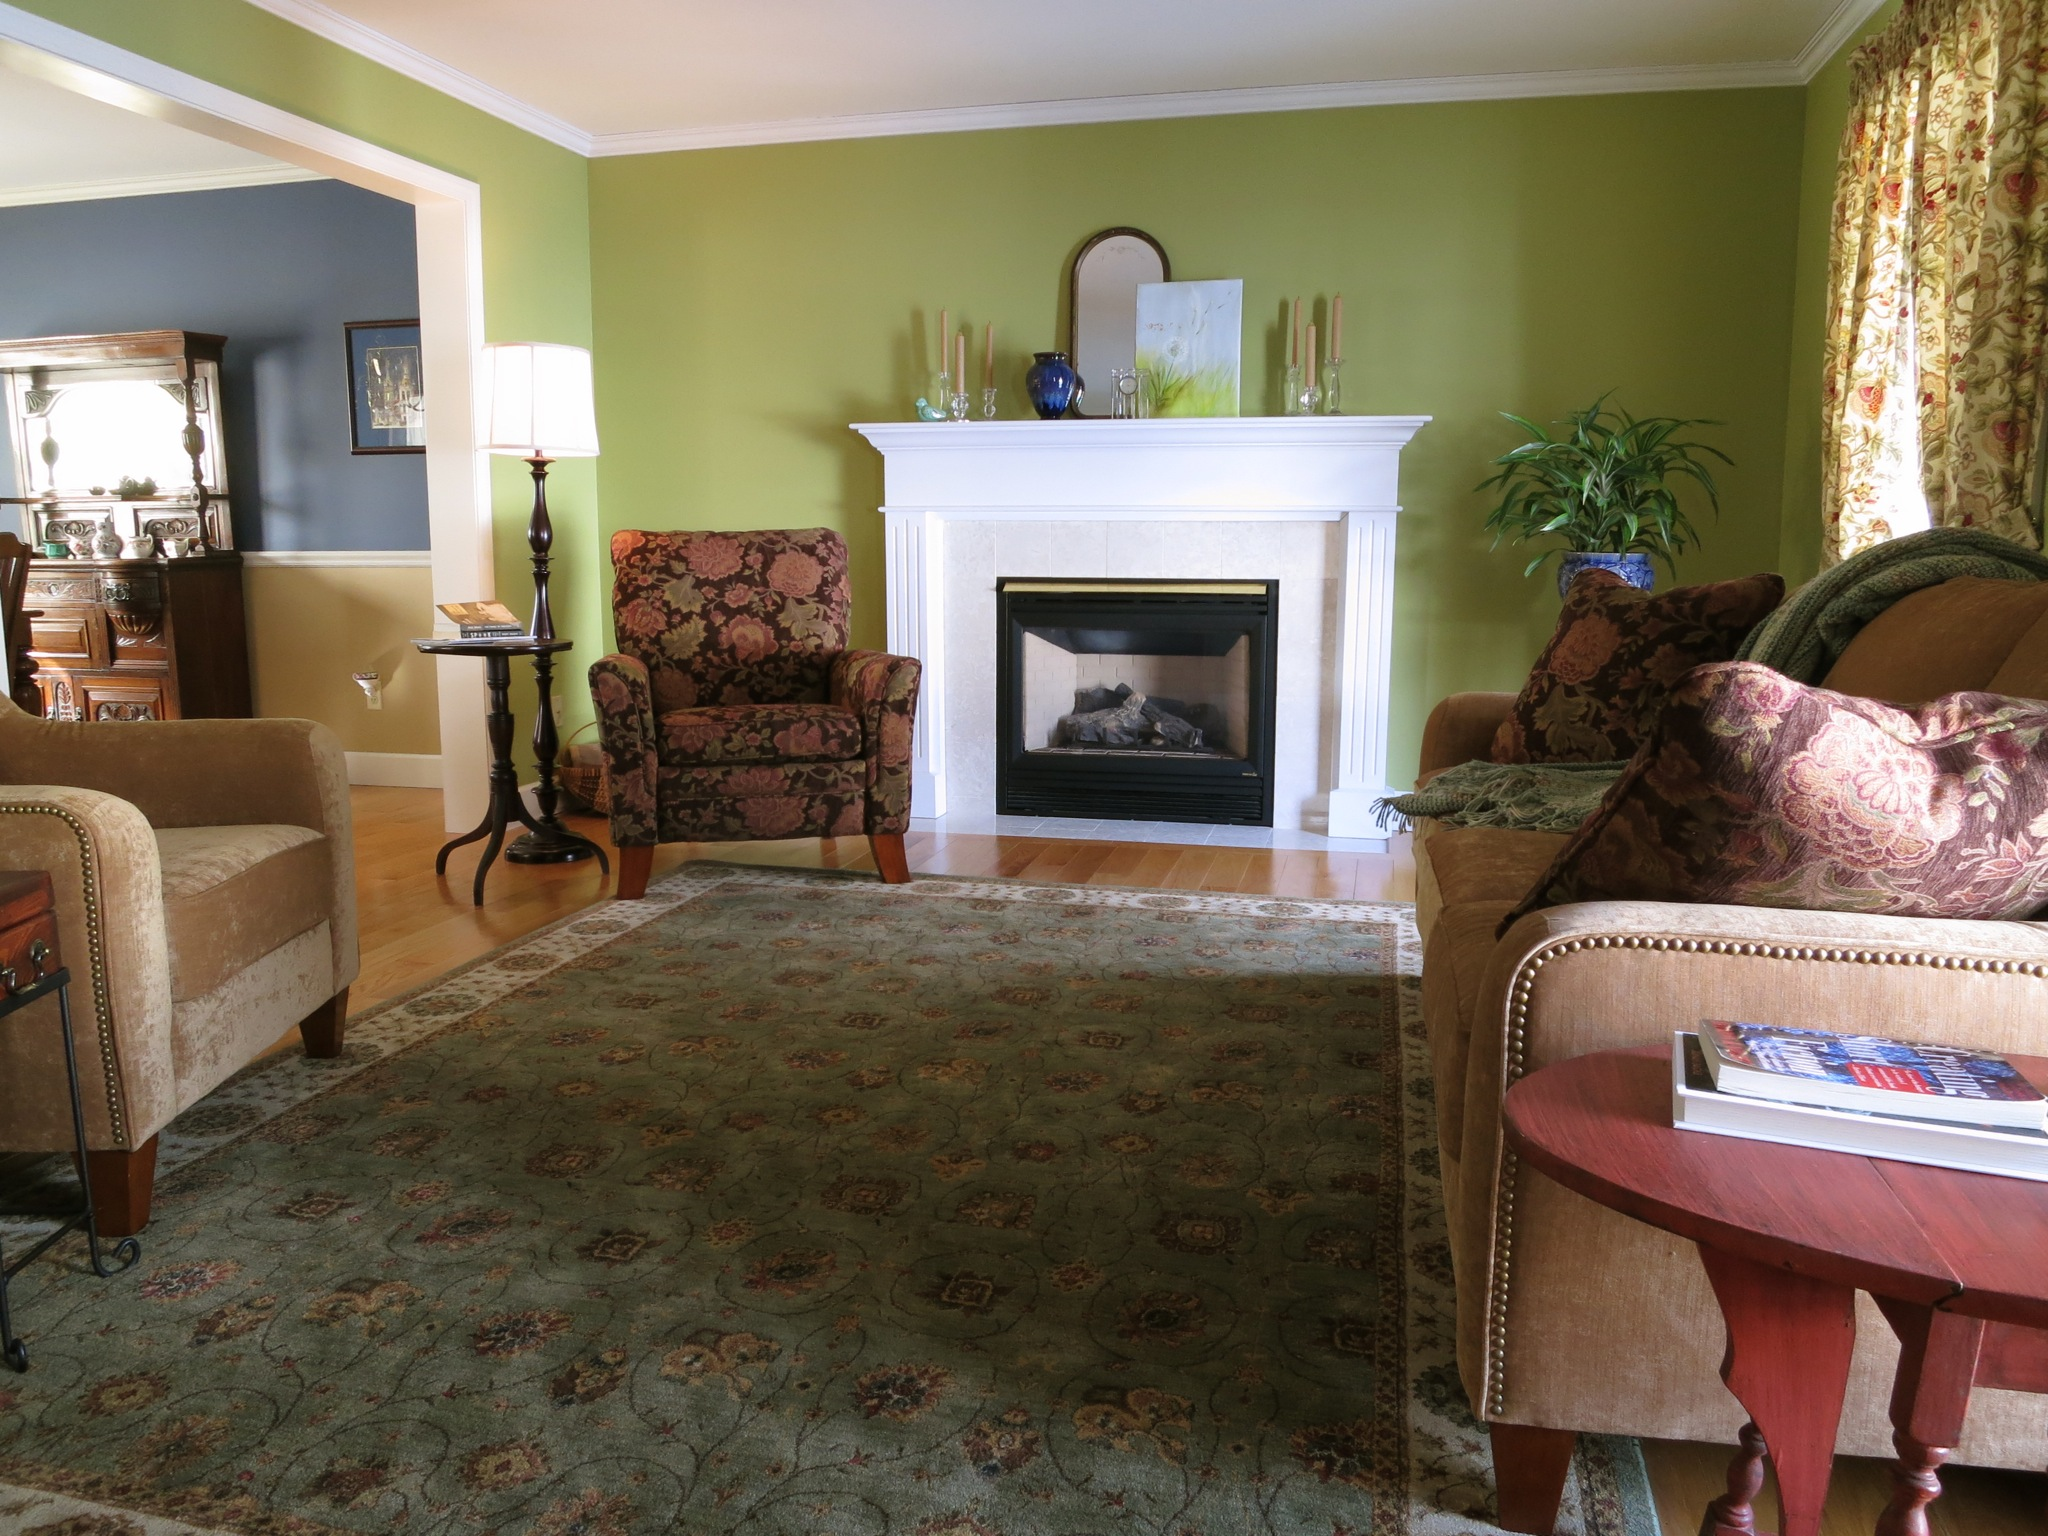 The living room, like every room on the lower level, offers crown moldings and deep baseboards. It also features a gas fireplace with marble tile surround.